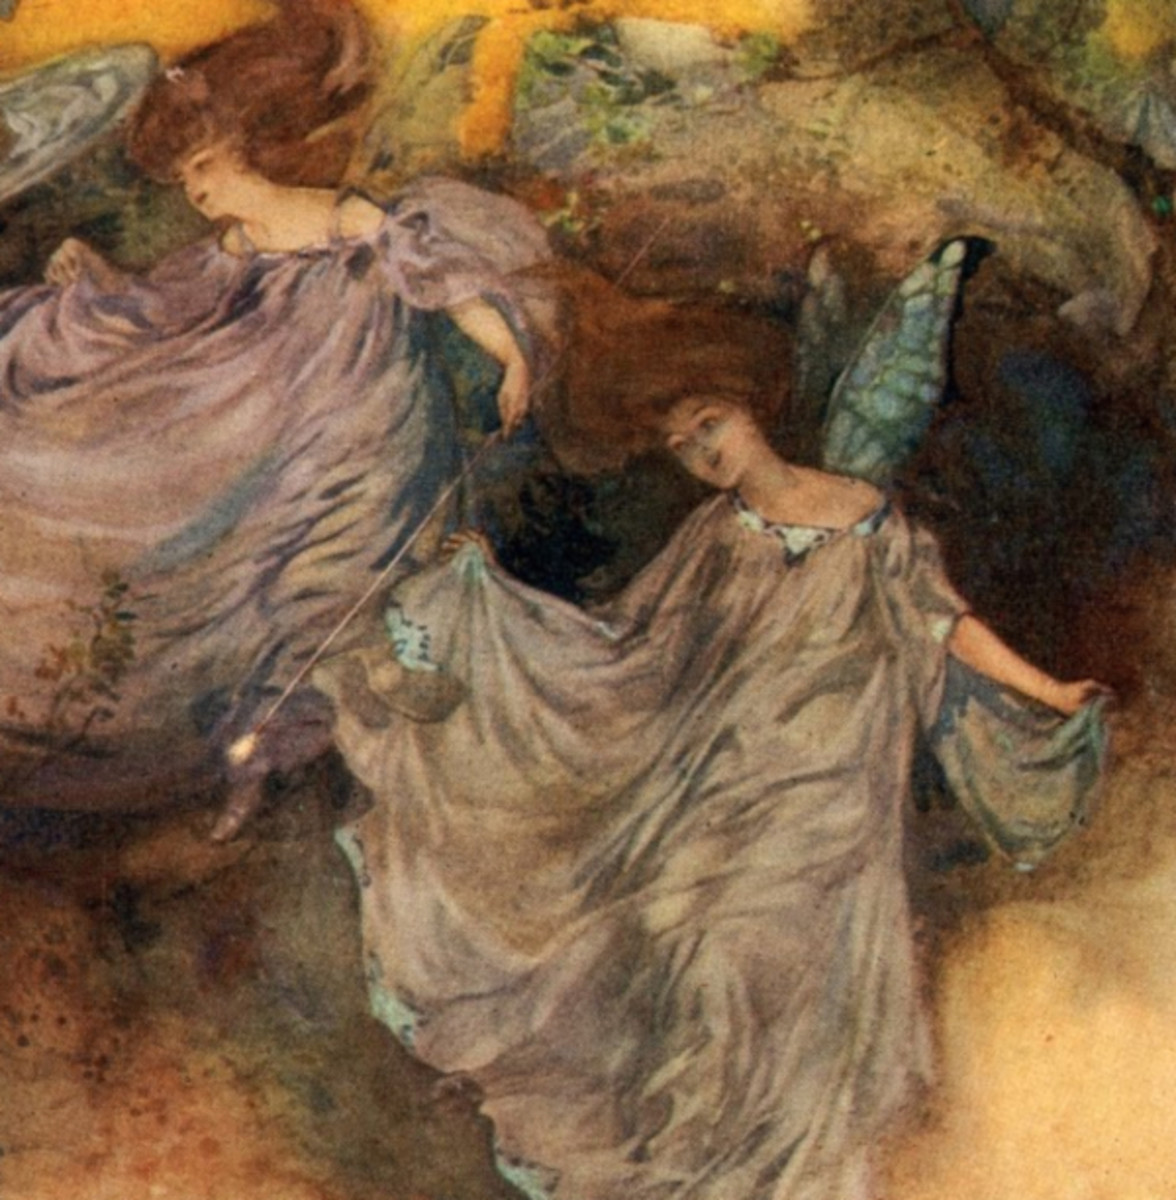 """Here we show a portion of 'Enter Fairies, led by Leila, Celia, and Fleta' - it is from the suite by William Russell Flint published in """"Iolanthe and Other Operas"""" (1910)."""